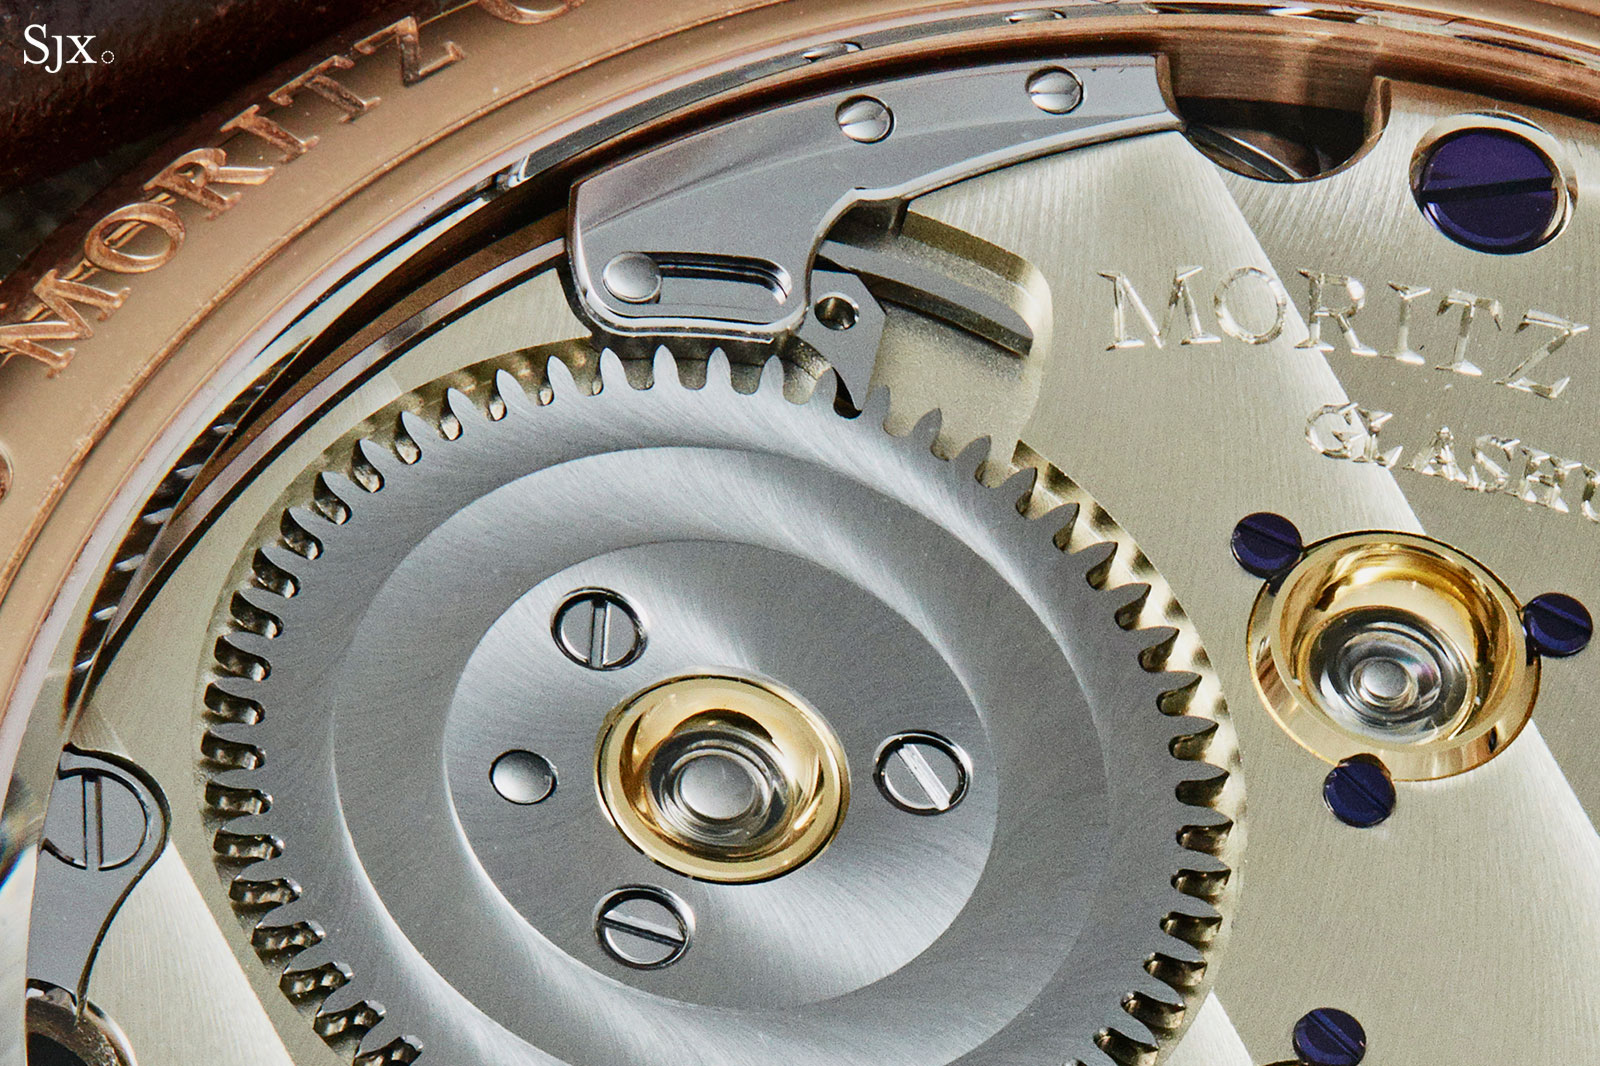 Moritz Grossmann Benu tourbillon rose gold 6